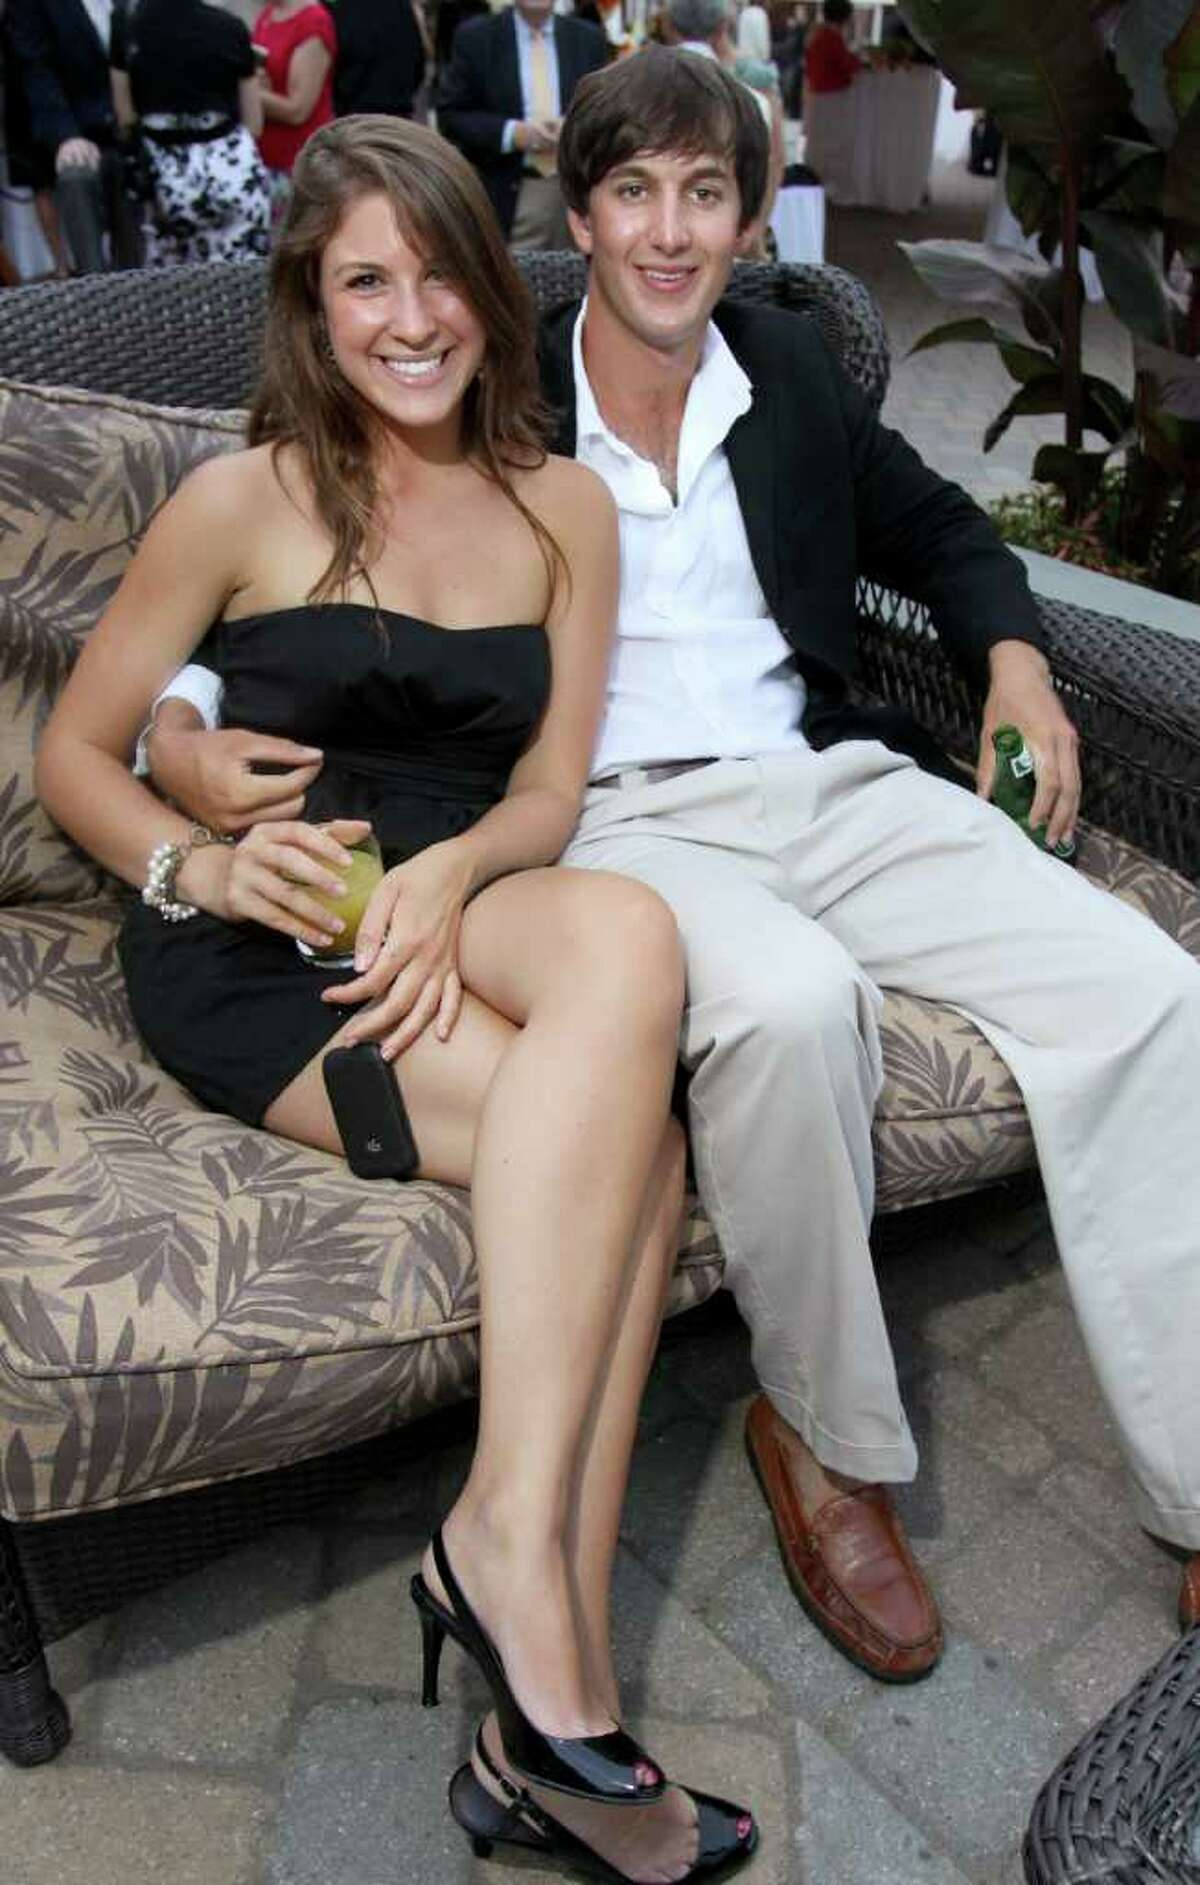 Saratoga Springs, NY - July 28, 2011 - (Photo by Joe Putrock/Special to the Times Union) - Lauren Betzwieser(left) and Alex Olbrych(right) relax on the patio of Saratoga National Golf Club during the Teresian House Foundation 21st Annual Friendraising Gala.